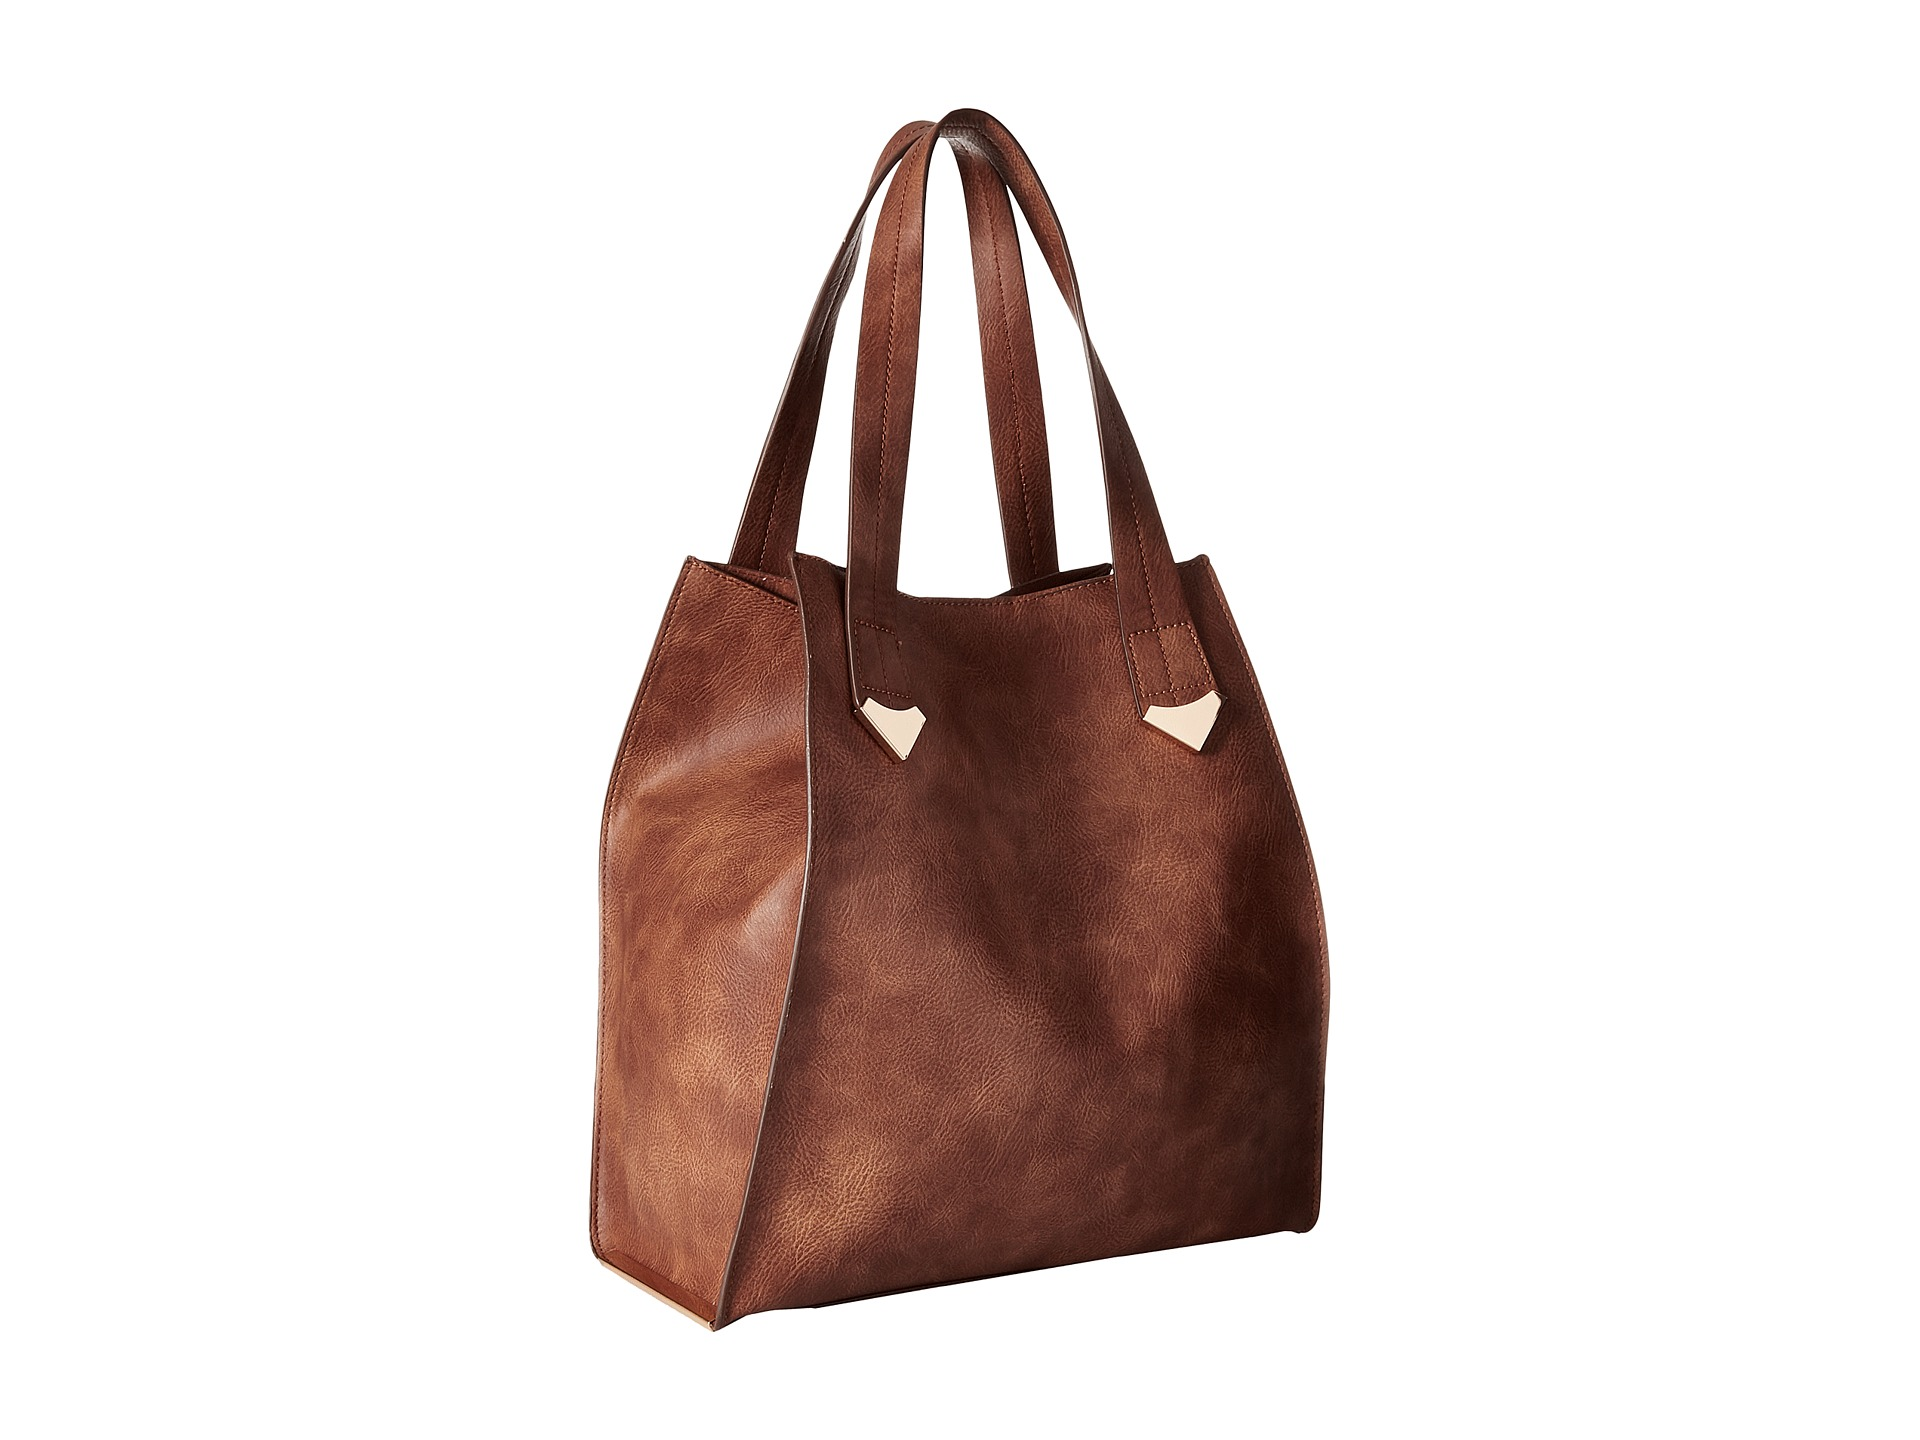 Samantha Brown Luggage Qvc: Steve Madden Brylee Large Tote Cognac